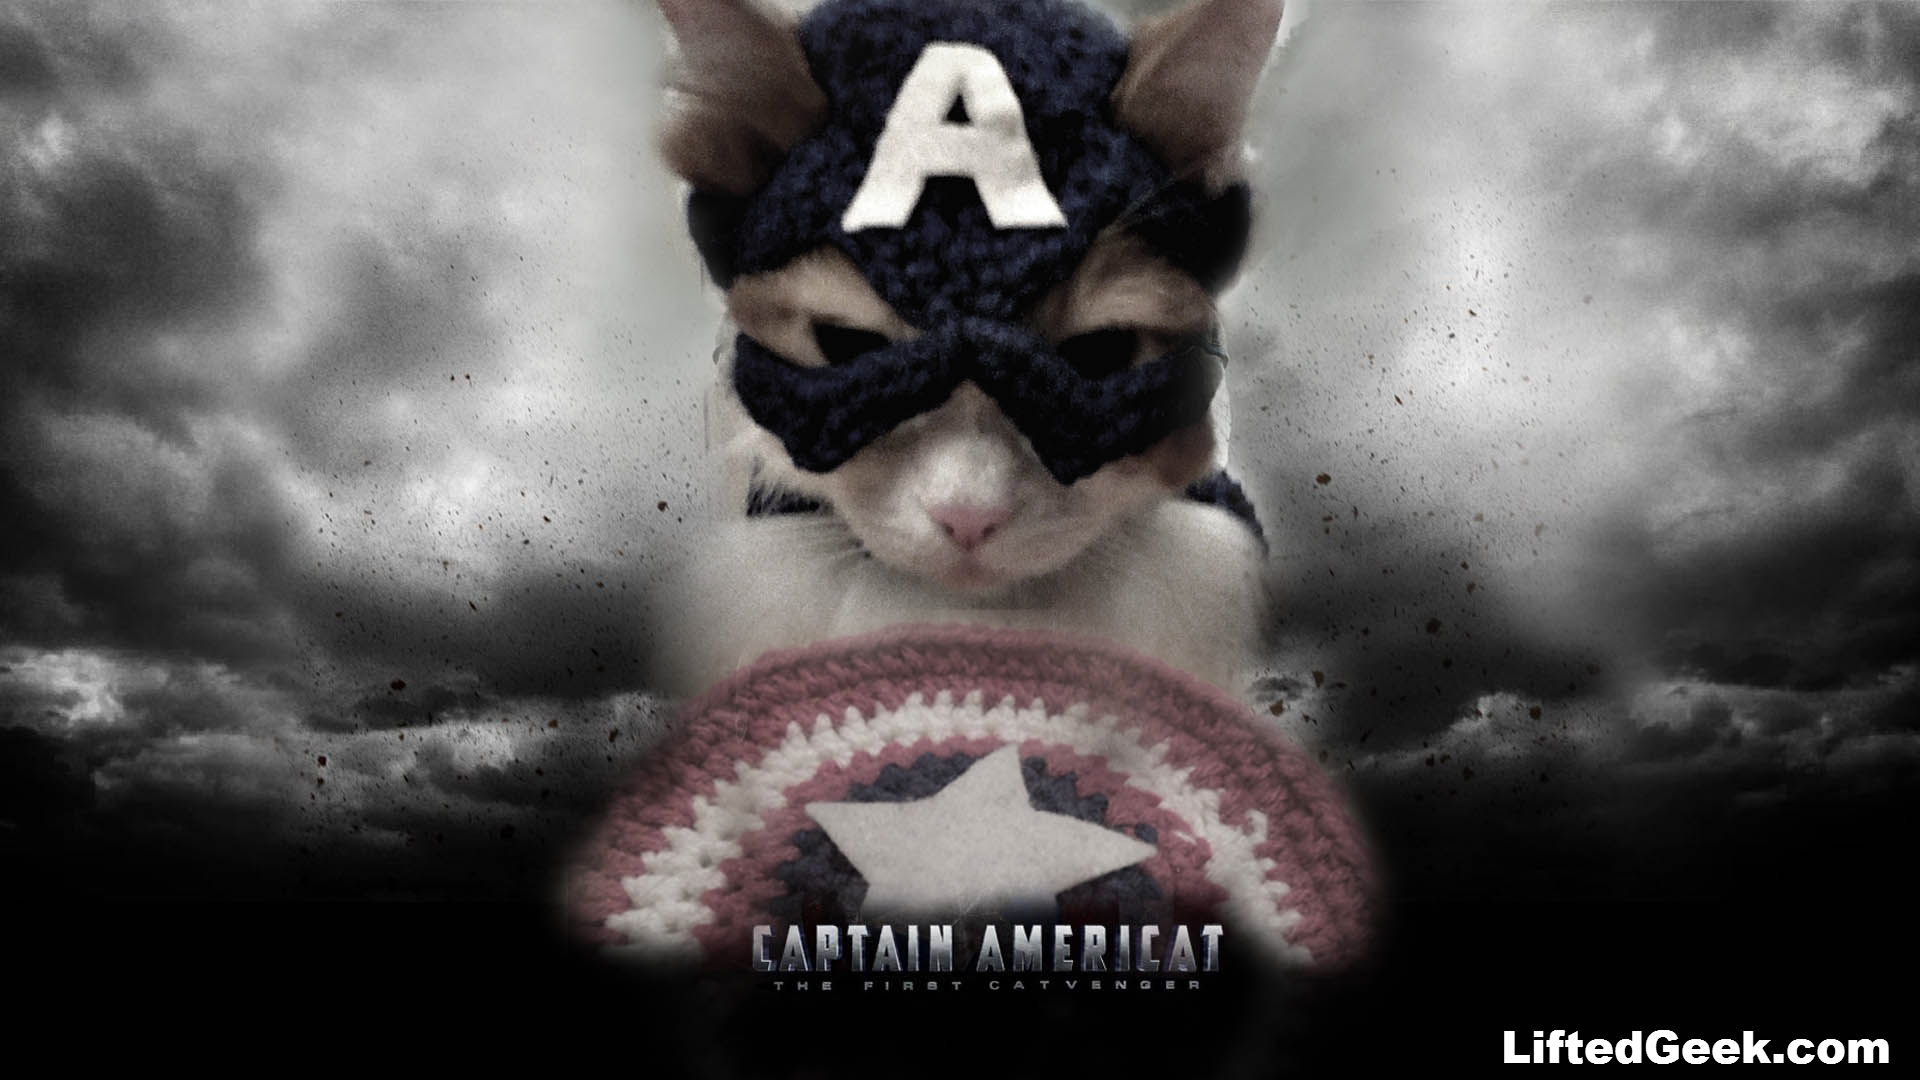 Captain Americat Movie Wallpaper 2.jpg